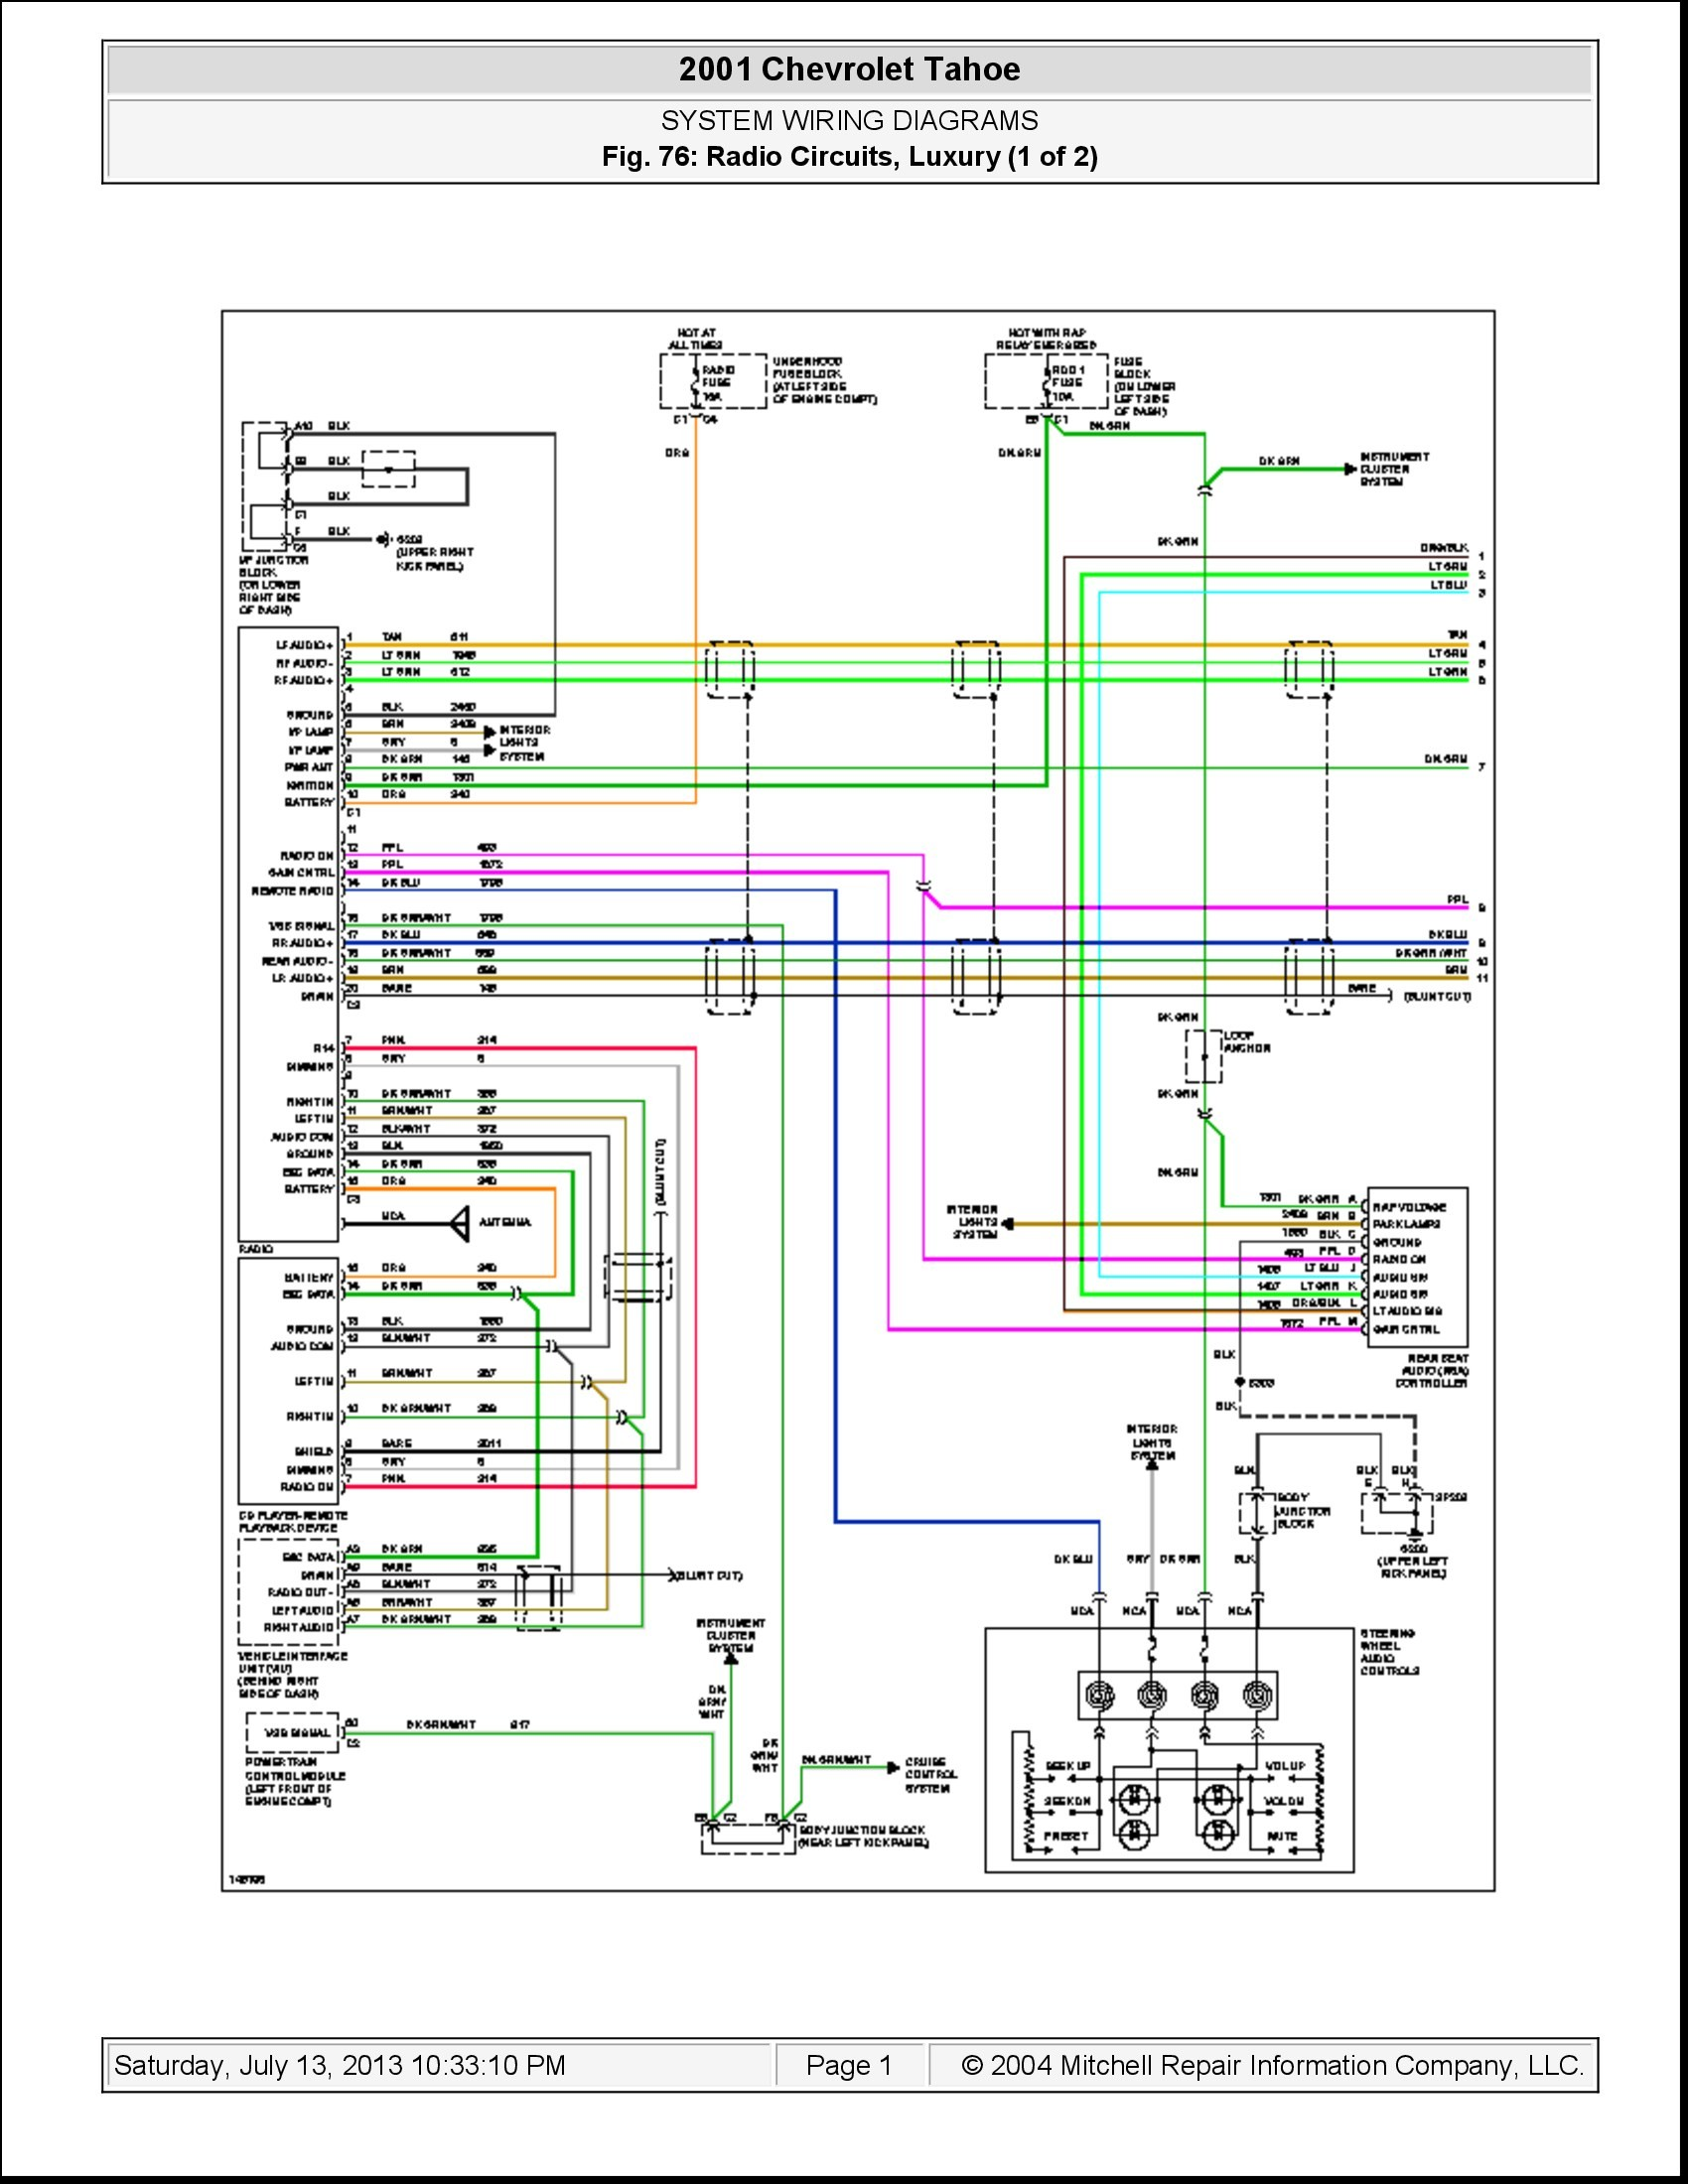 W10158196a Whirlpool Wiring Schematics Just Another Diagram Dryer Electrical Schematic Library Rh 40 Mac Happen De Oven